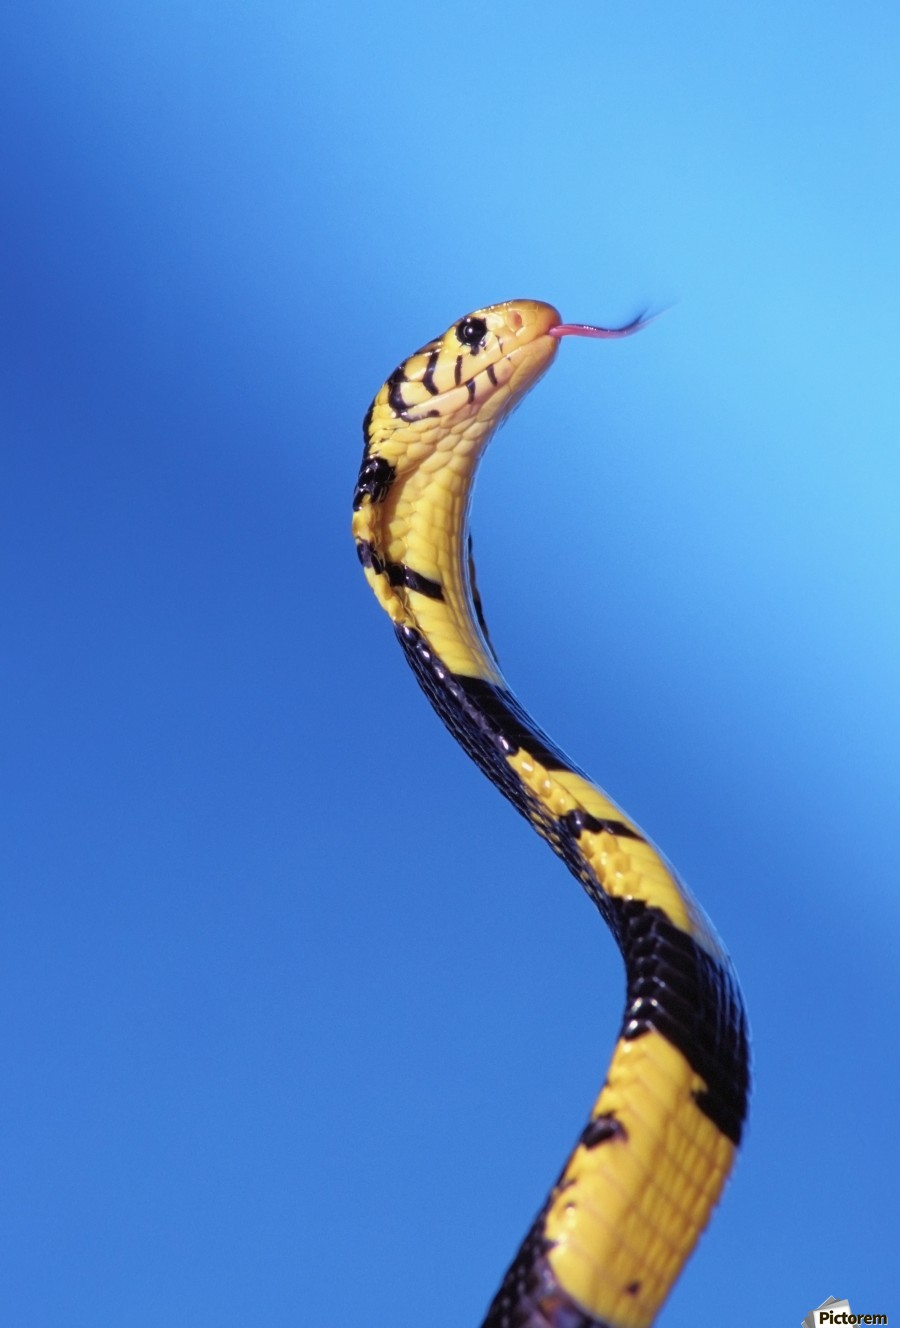 Forest cobra (naja melanoleuca) against a blue background;British columbia canada  Print